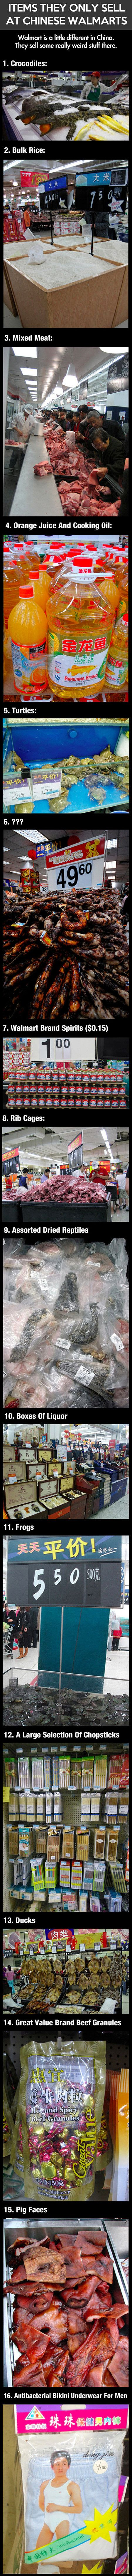 Here are some bizarre items you probably never knew they sold at Walmart locations in China.